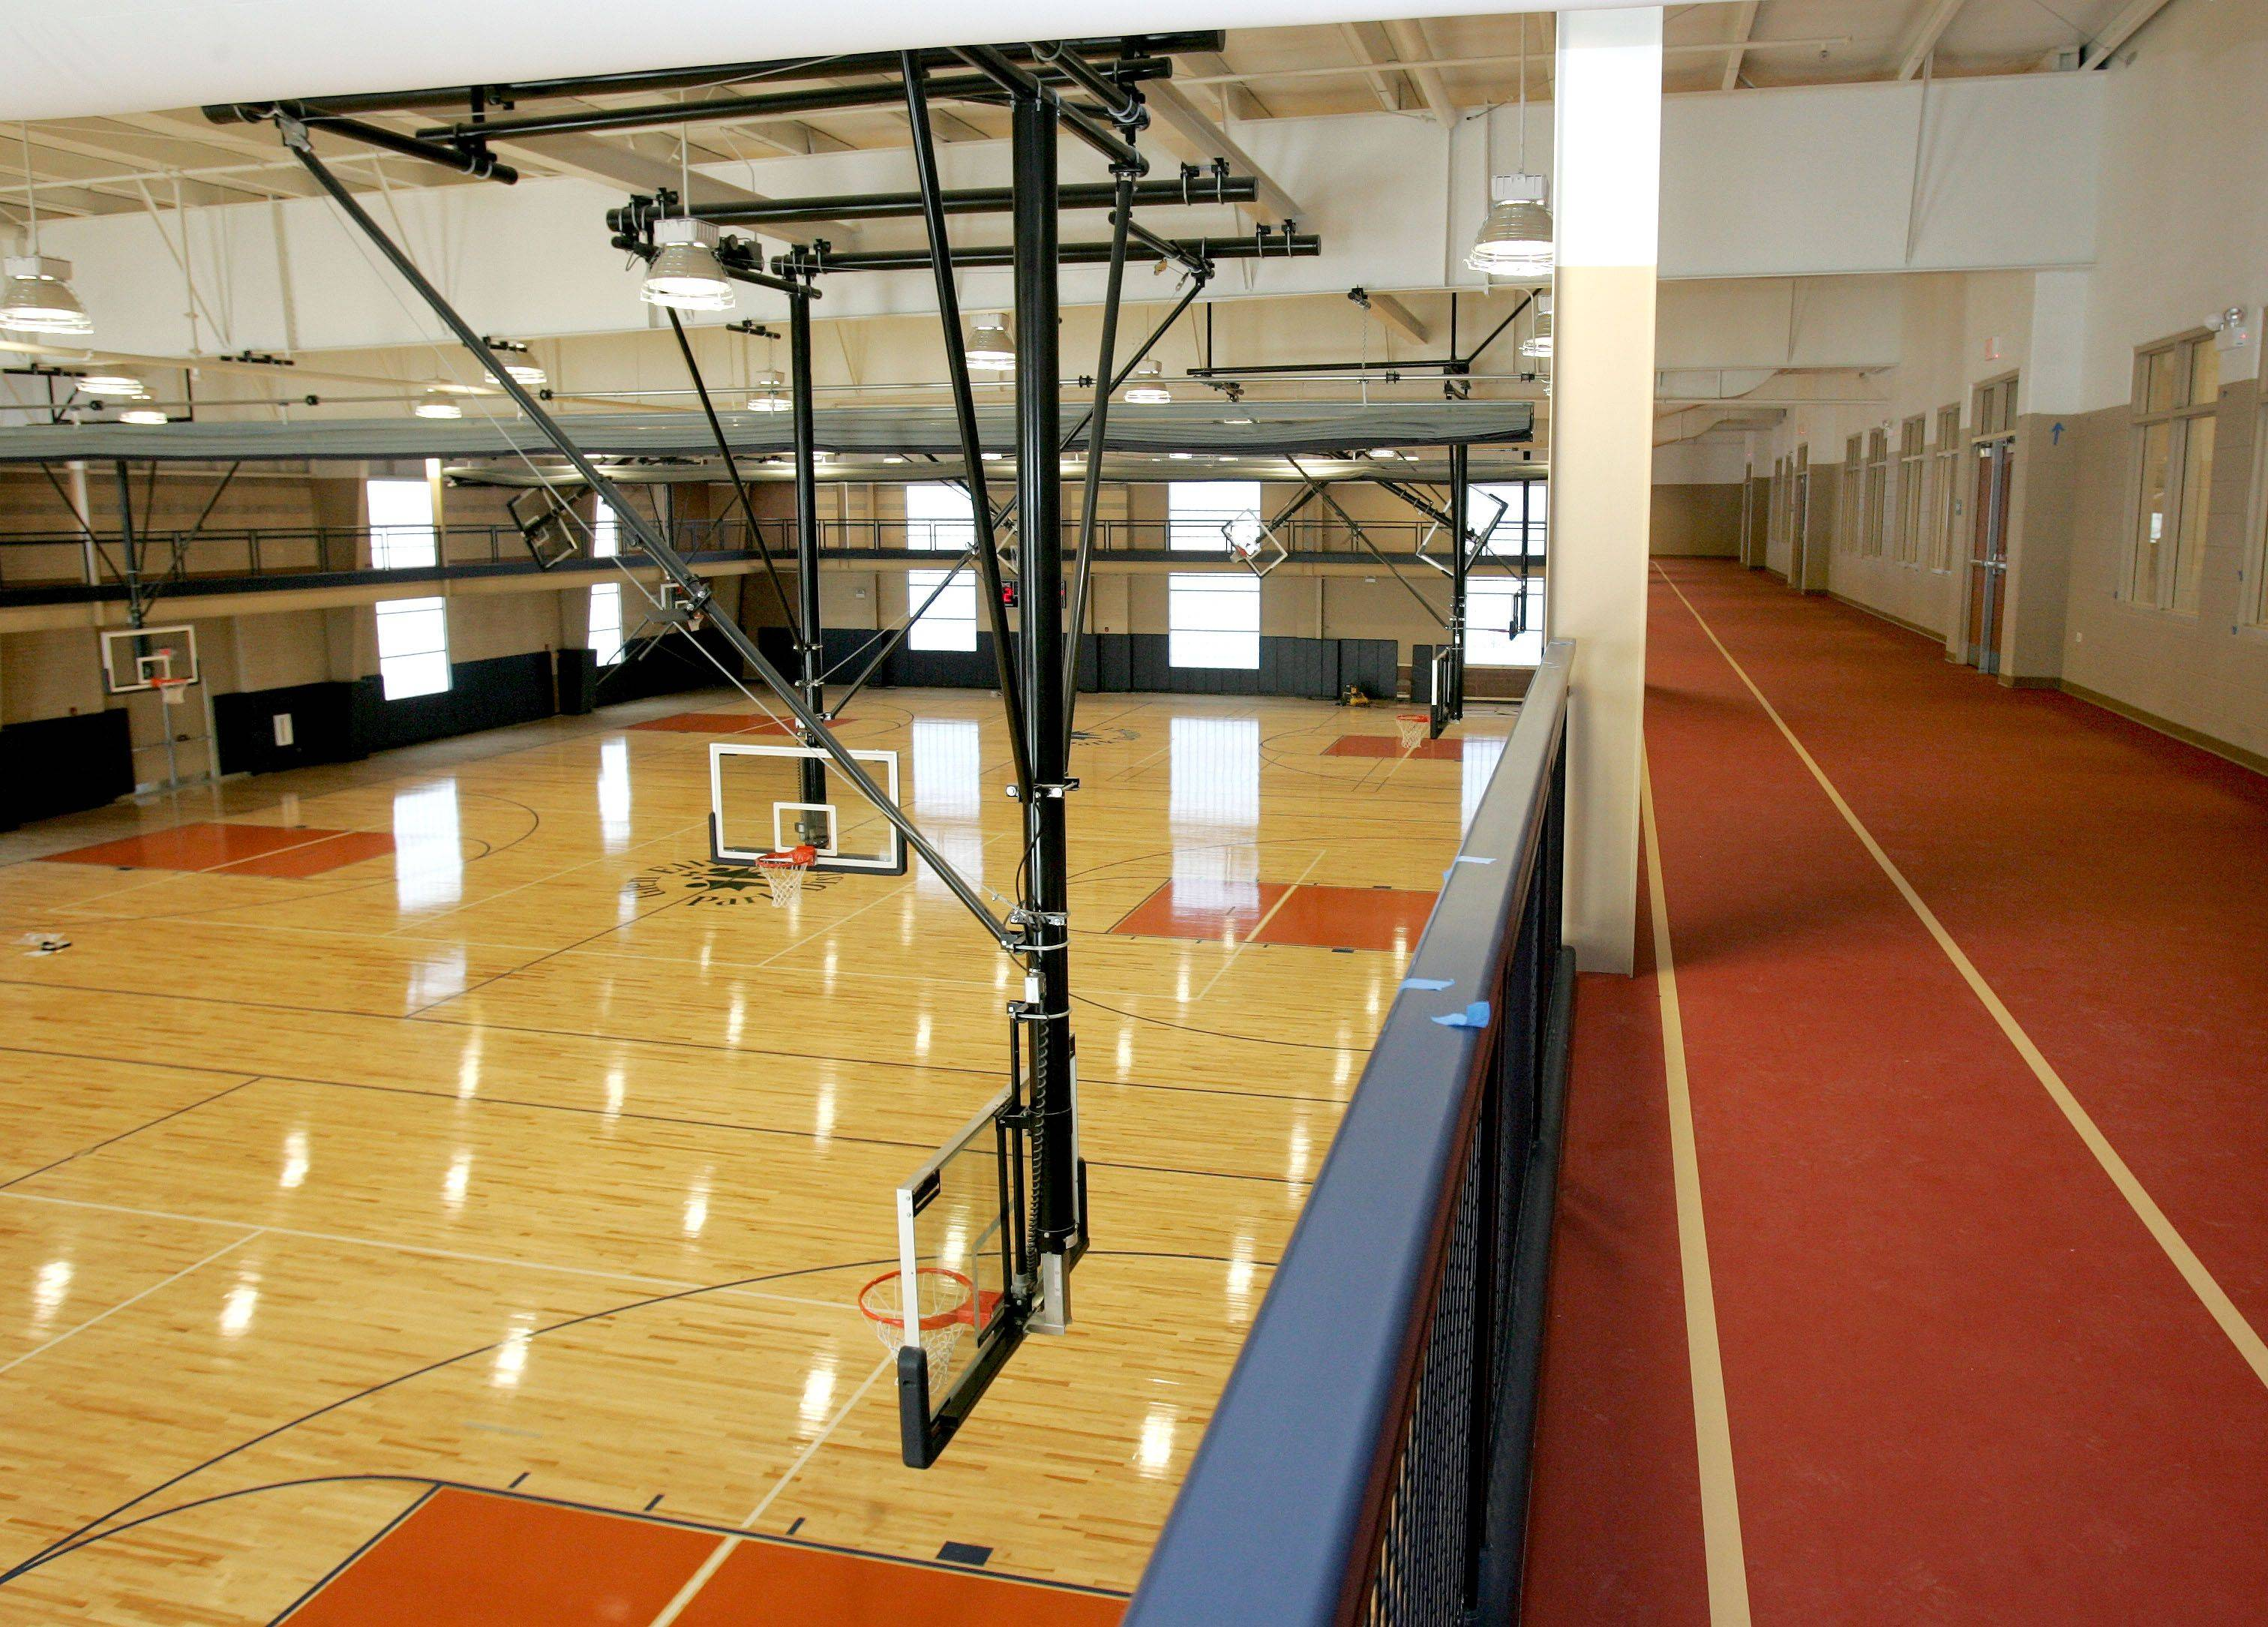 Glen Ellyn park officials have terminated contracts with three companies that worked on the Ackerman Sports & Fitness Center, which has been plagued by a leaky roof.